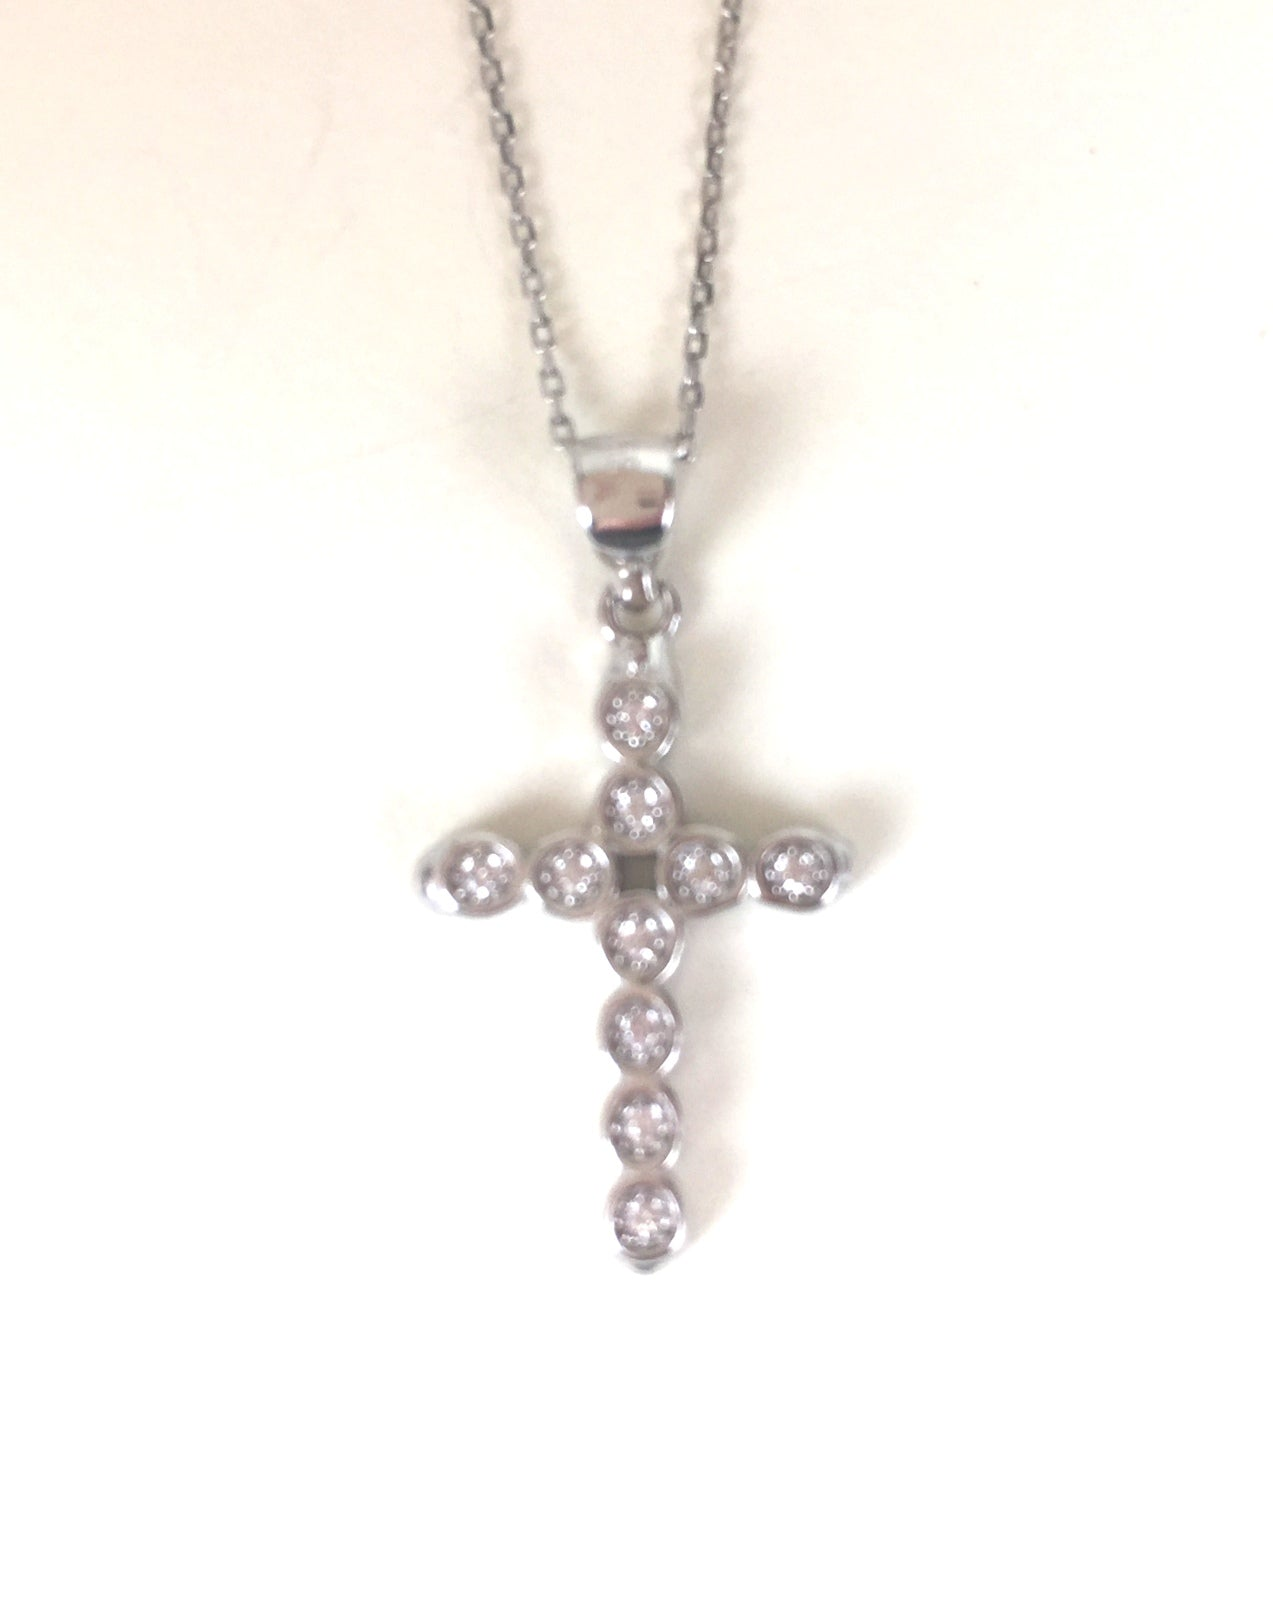 CROSS 2 PAVE CZ STERLING SILVER NECKLACE